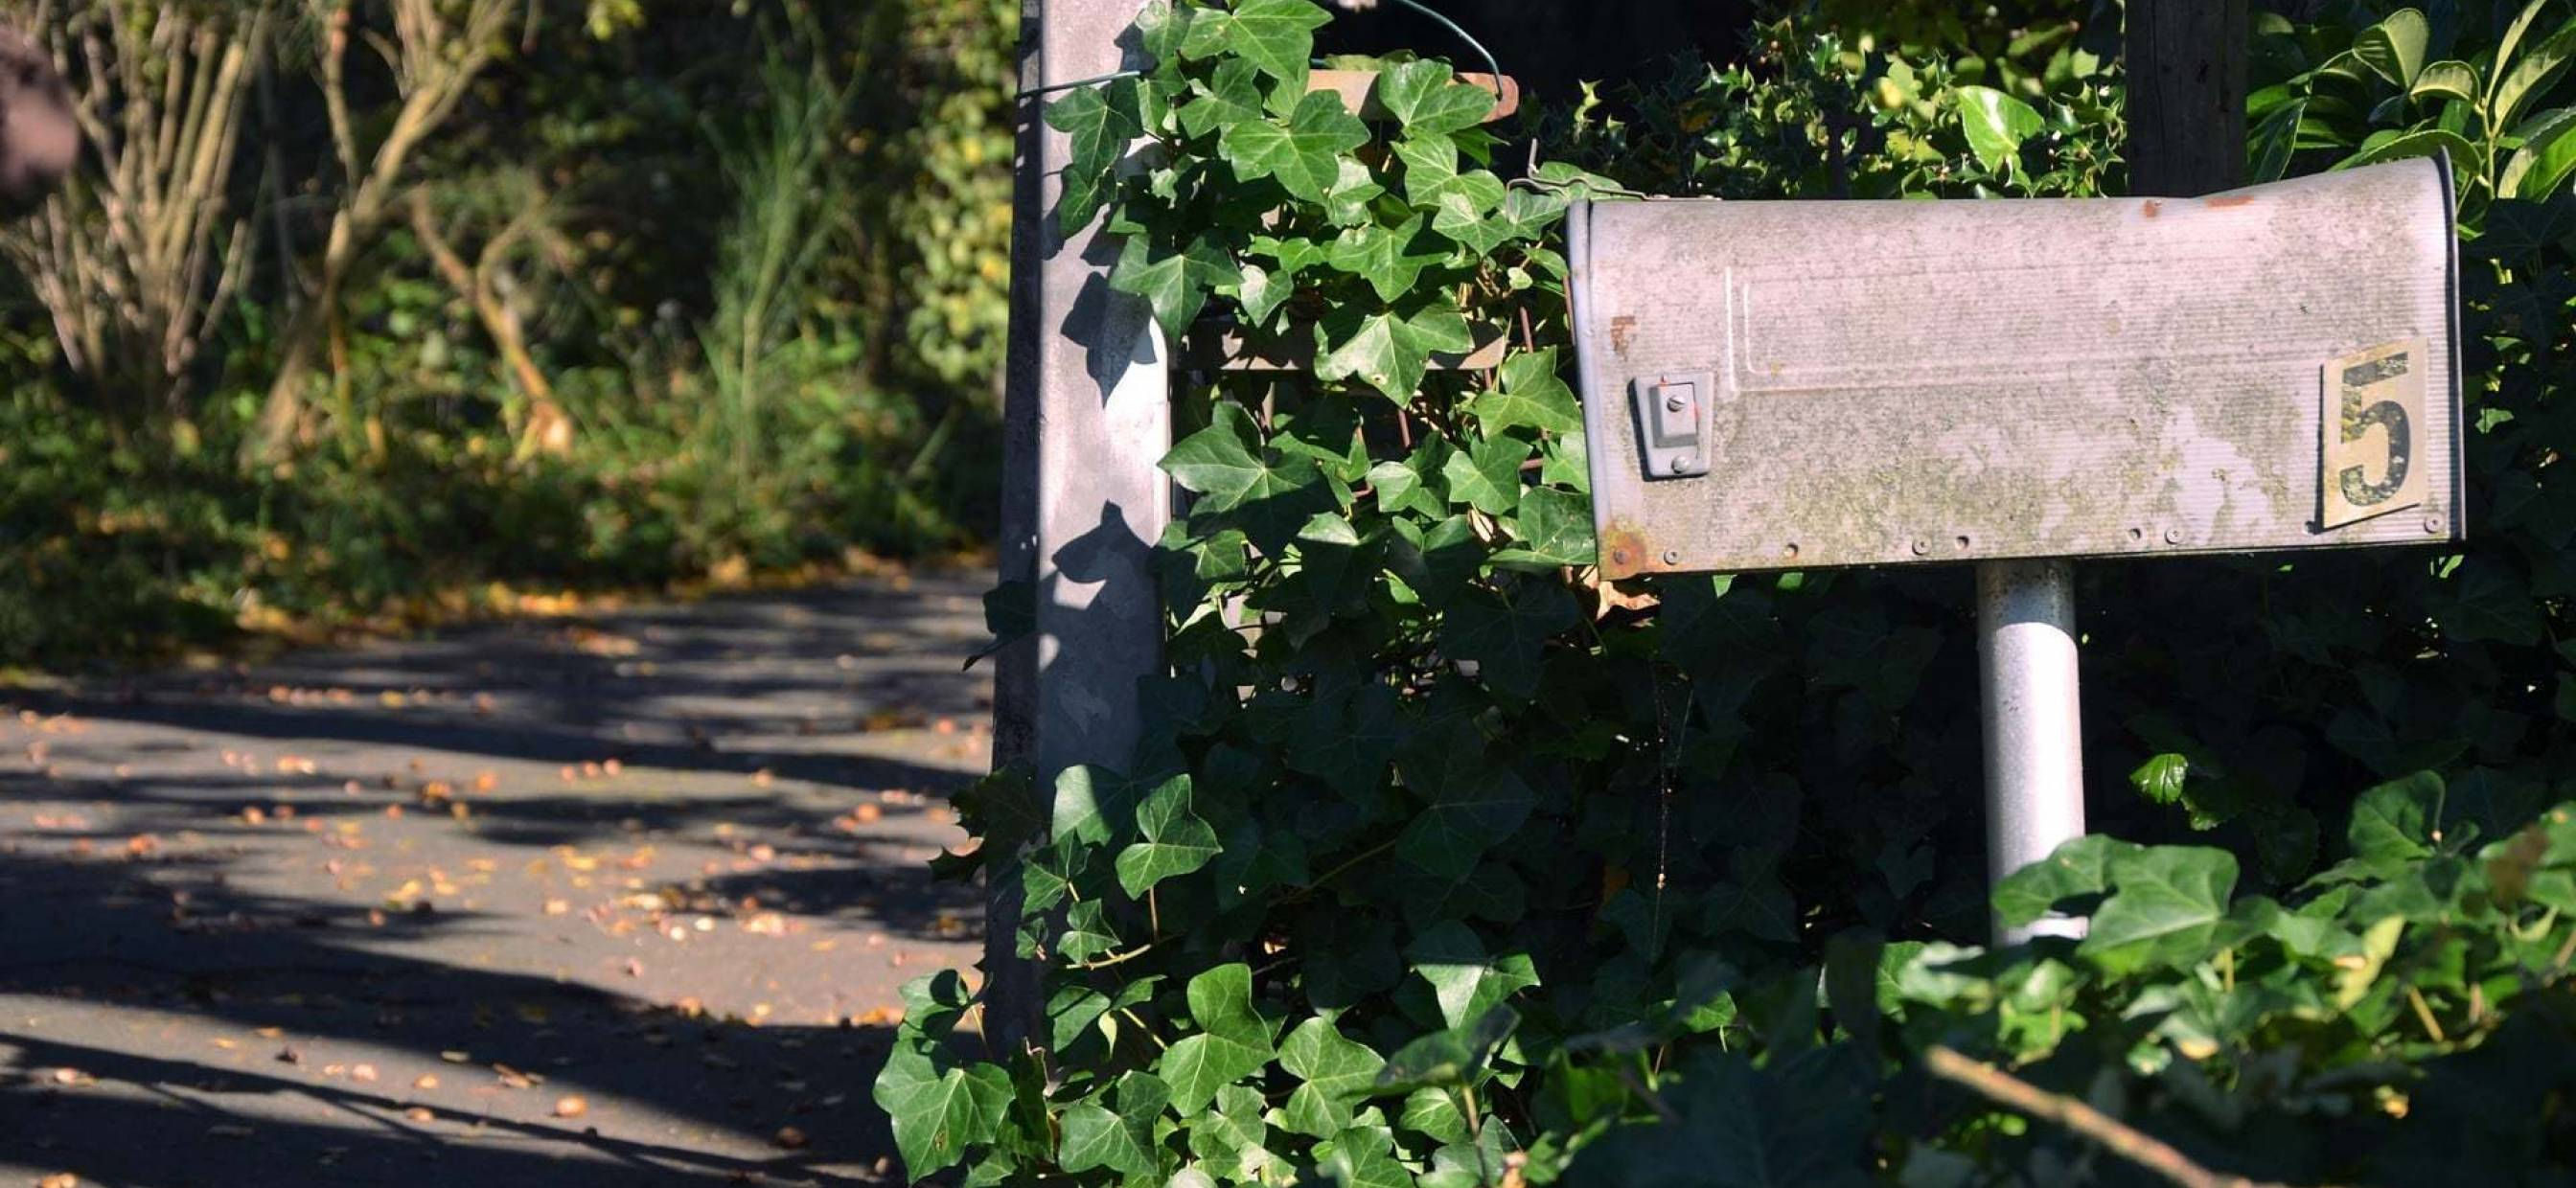 15 Reasons Direct Mail is Effective in Land Marketing